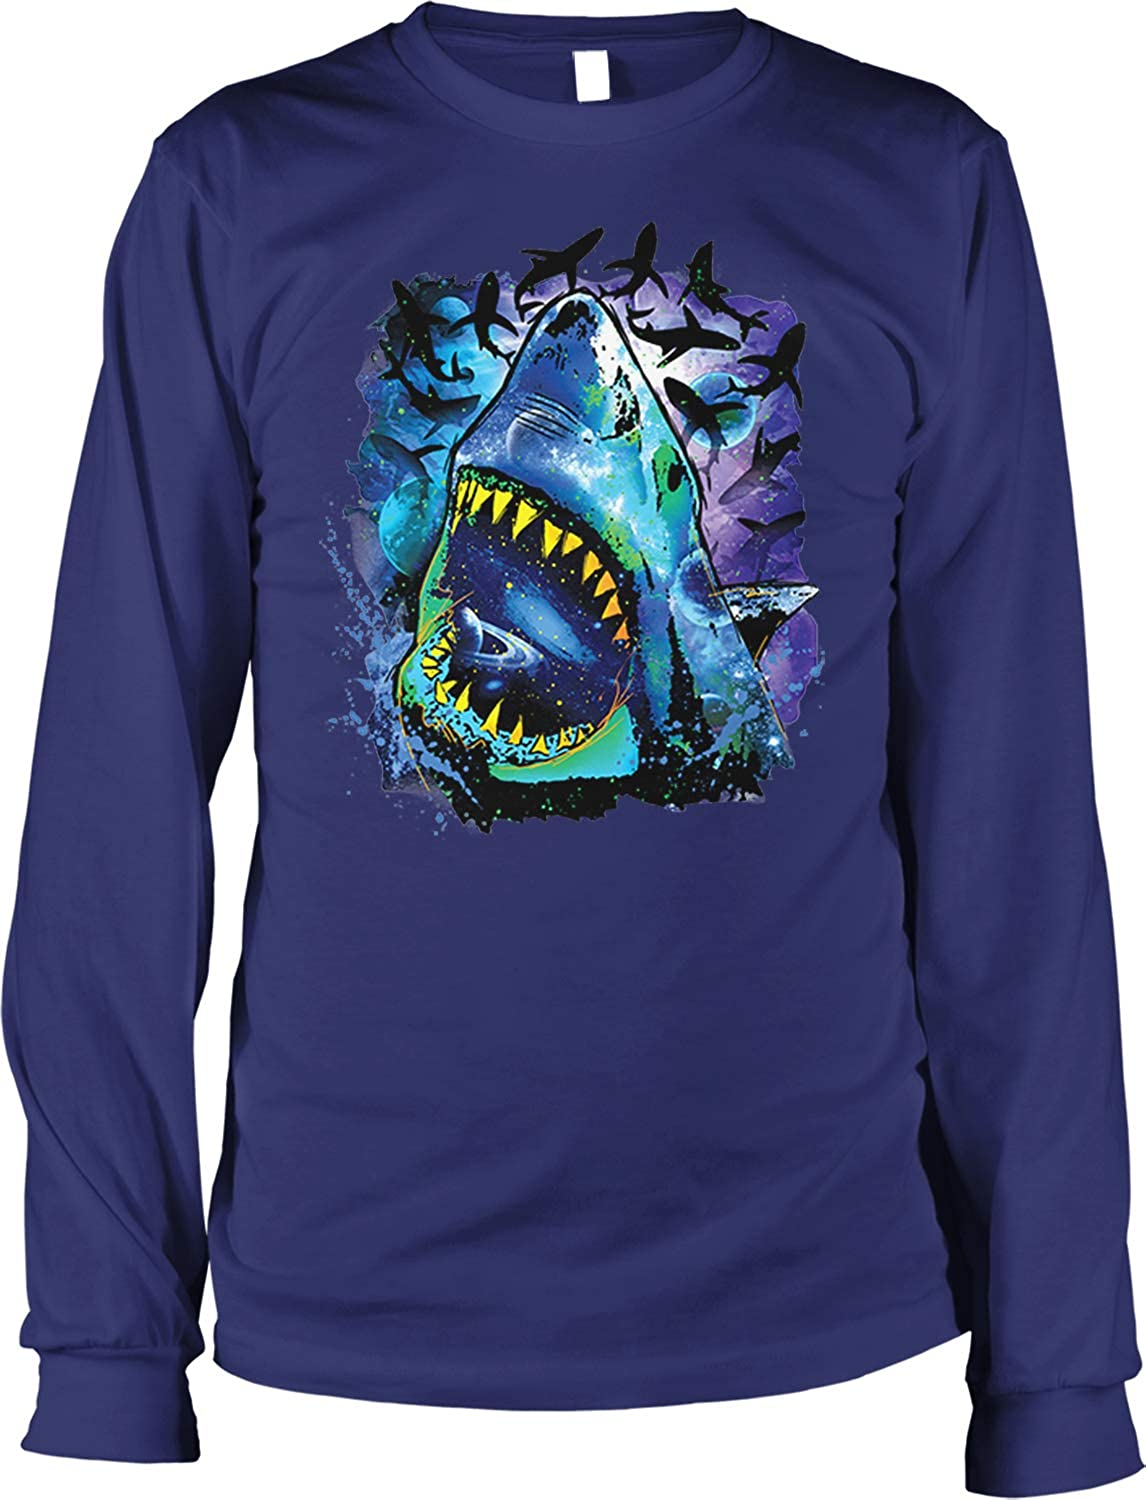 Hoodteez Great White, Cosmos, Galaxy, Space Pattern Men's Long Sleeve Shirt